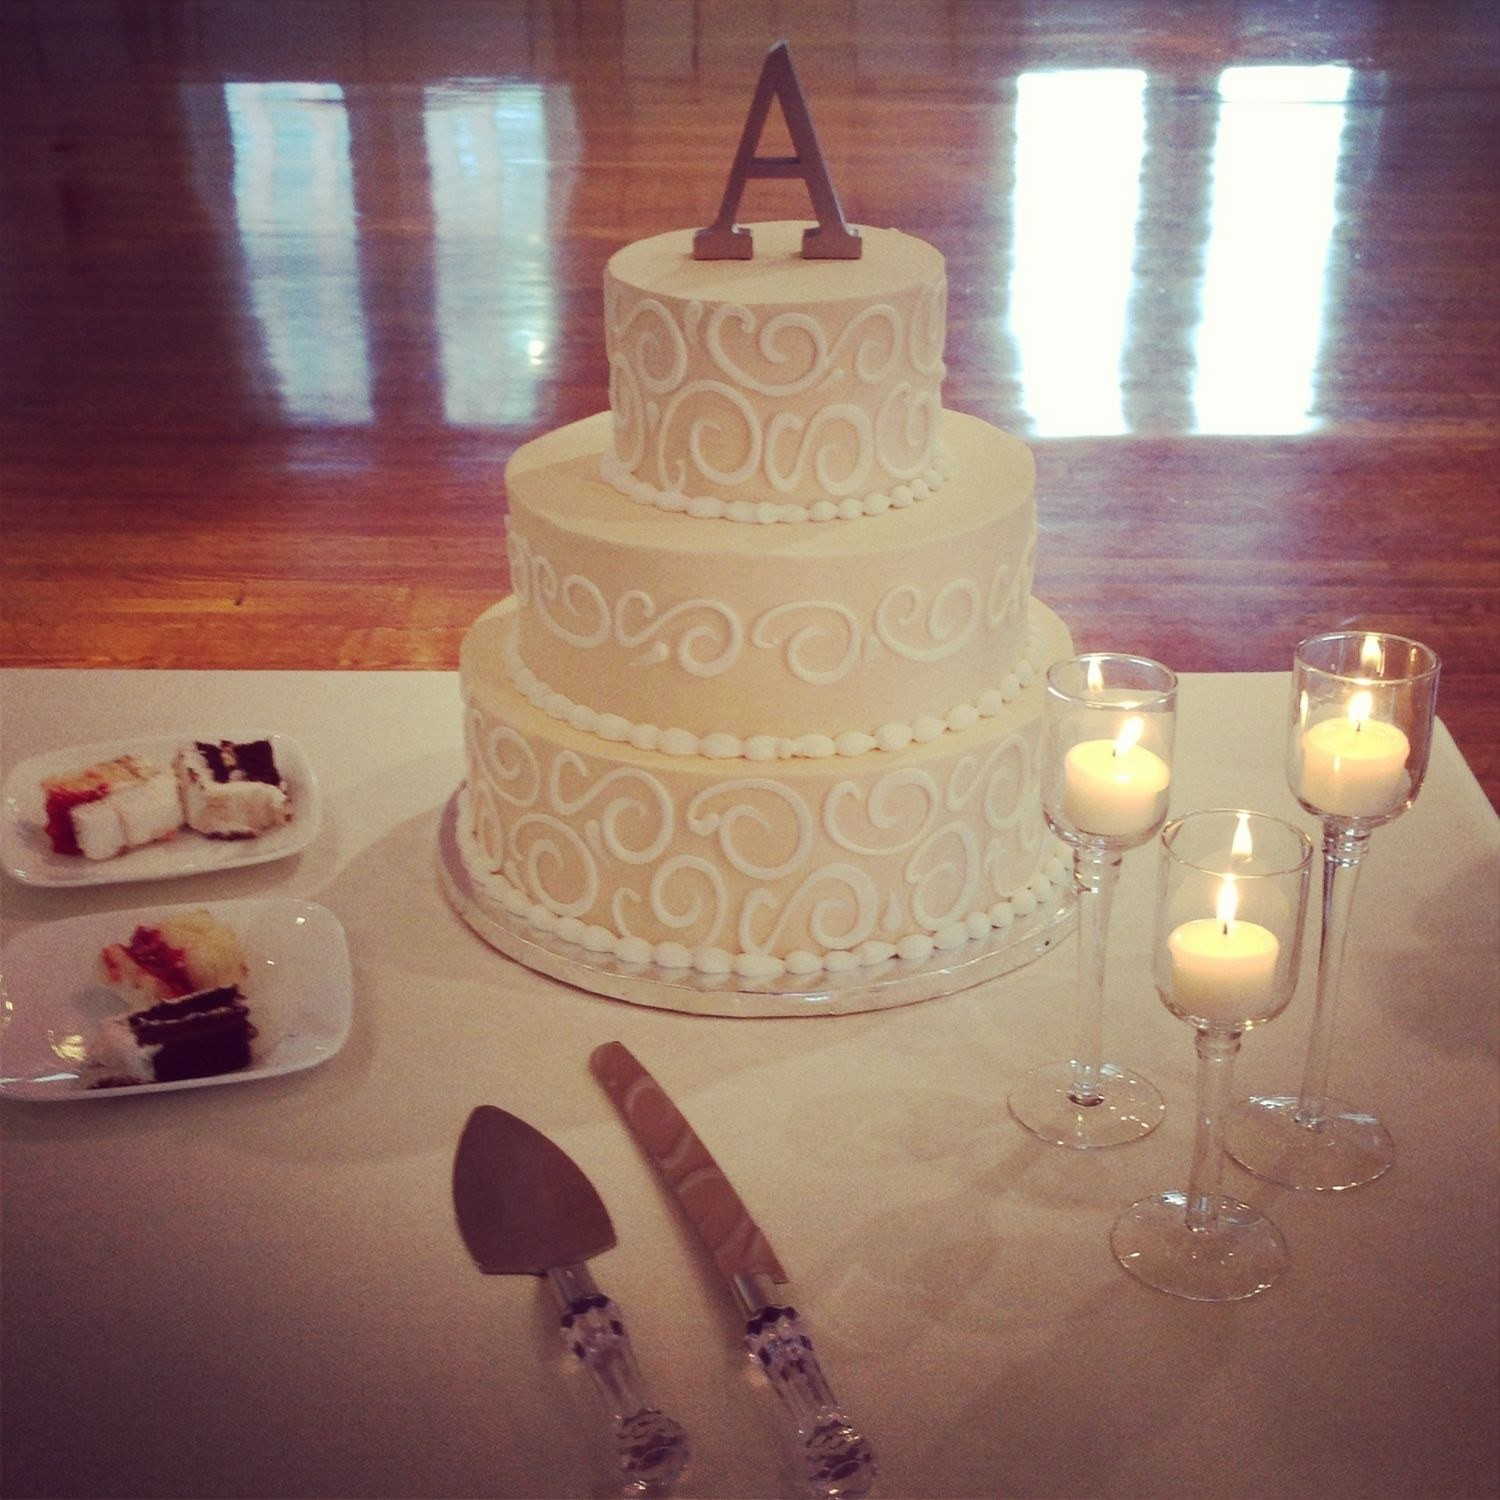 Pictures Of Walmart Wedding Cakes  News Flash Walmart Makes Wedding Cakes And They re GOOD